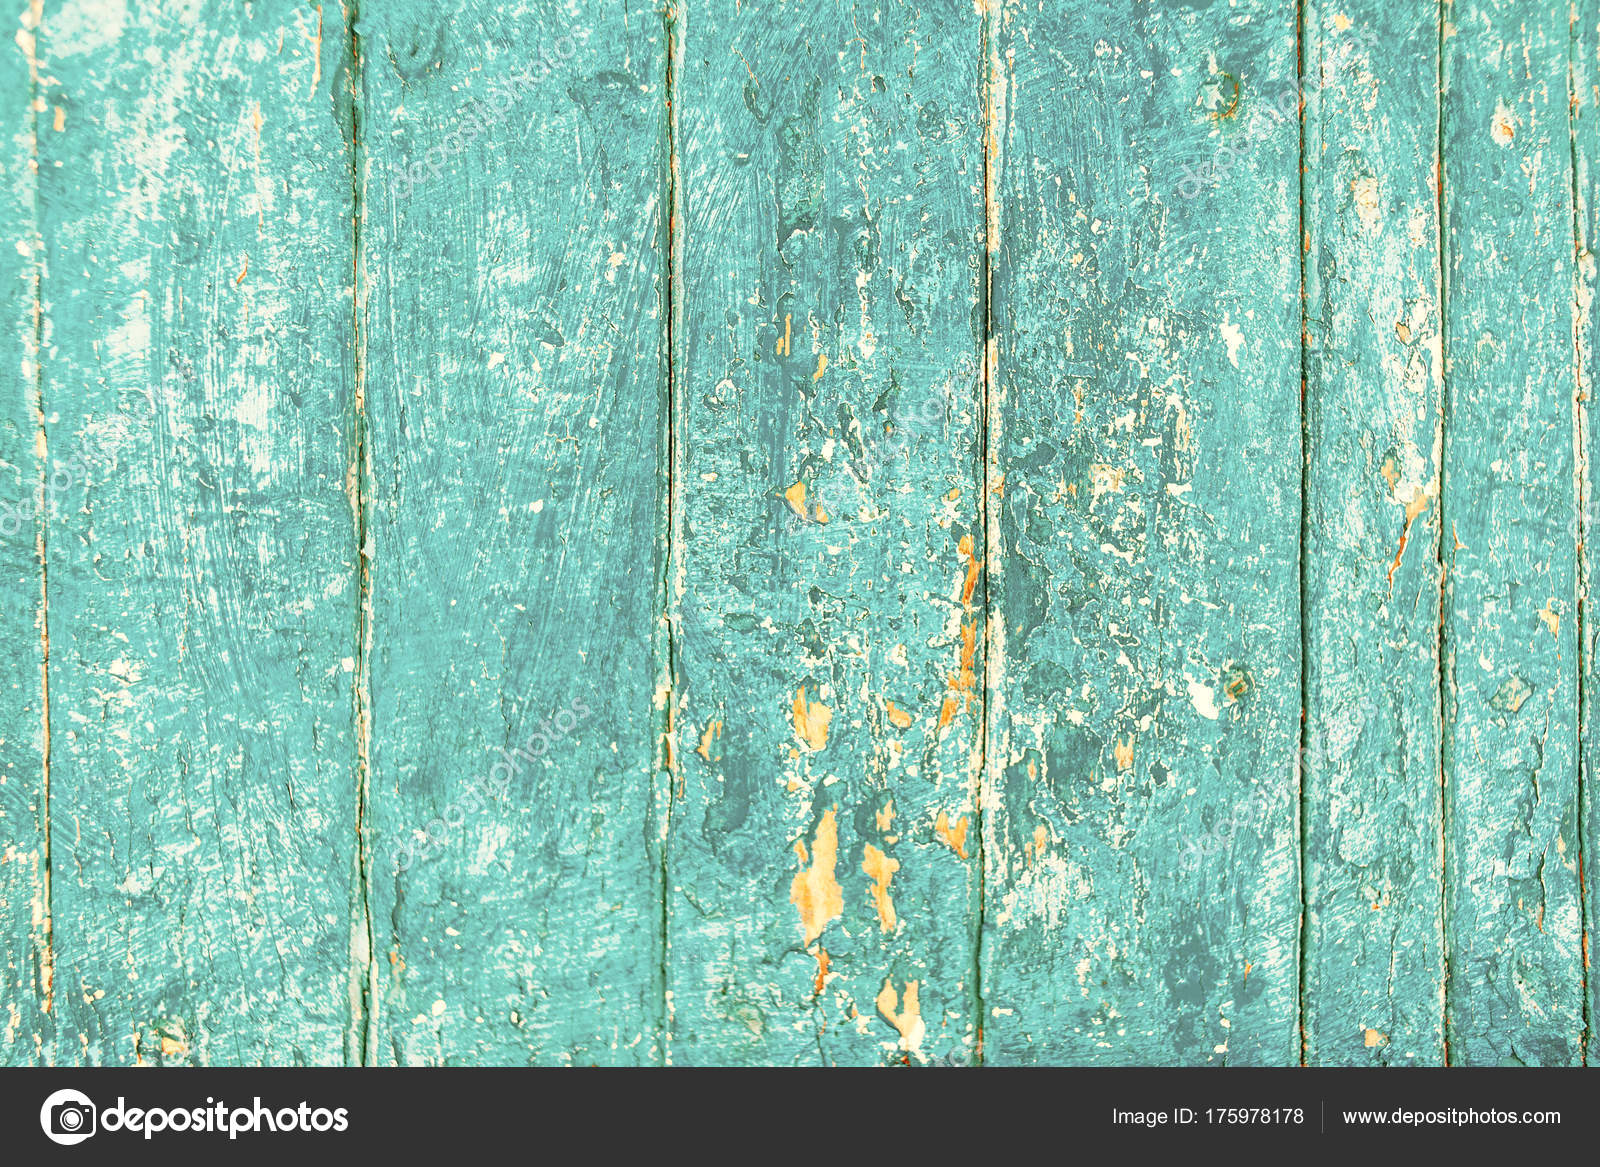 Shabby Vintage Blue Color Wooden Textured Planks Rustic Surface Old Stock Photo